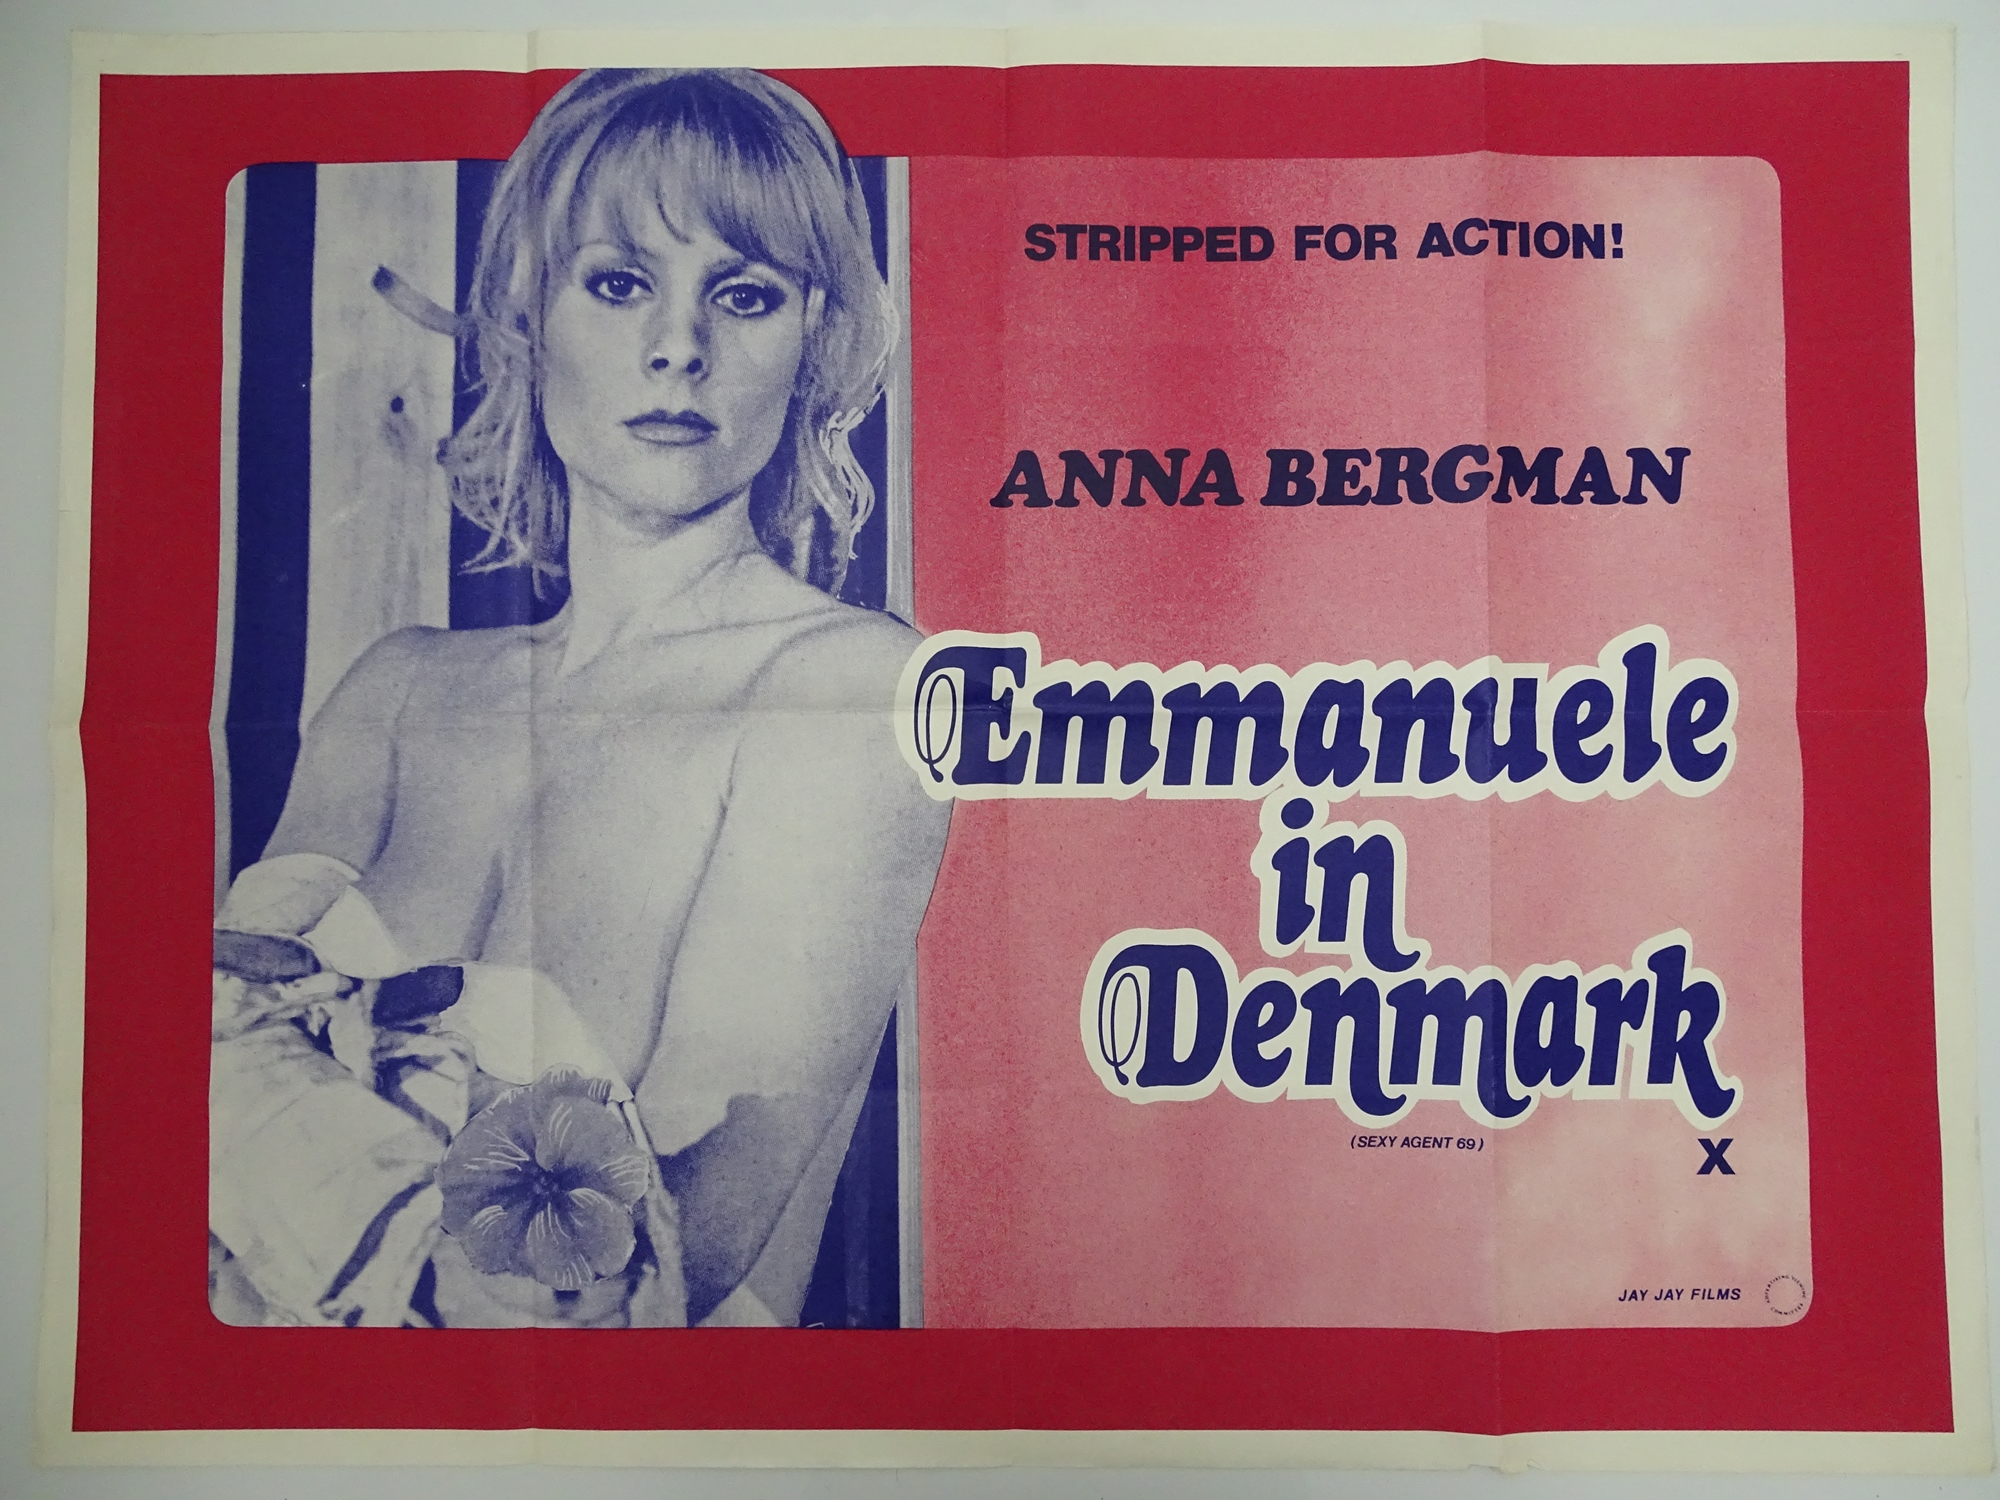 Selection of UK Quad Film Posters: NAUGHTY KNICKERS; FEMALE SEXUALITY; CONFESSIONS OF A MALE ESCORT; - Image 10 of 10